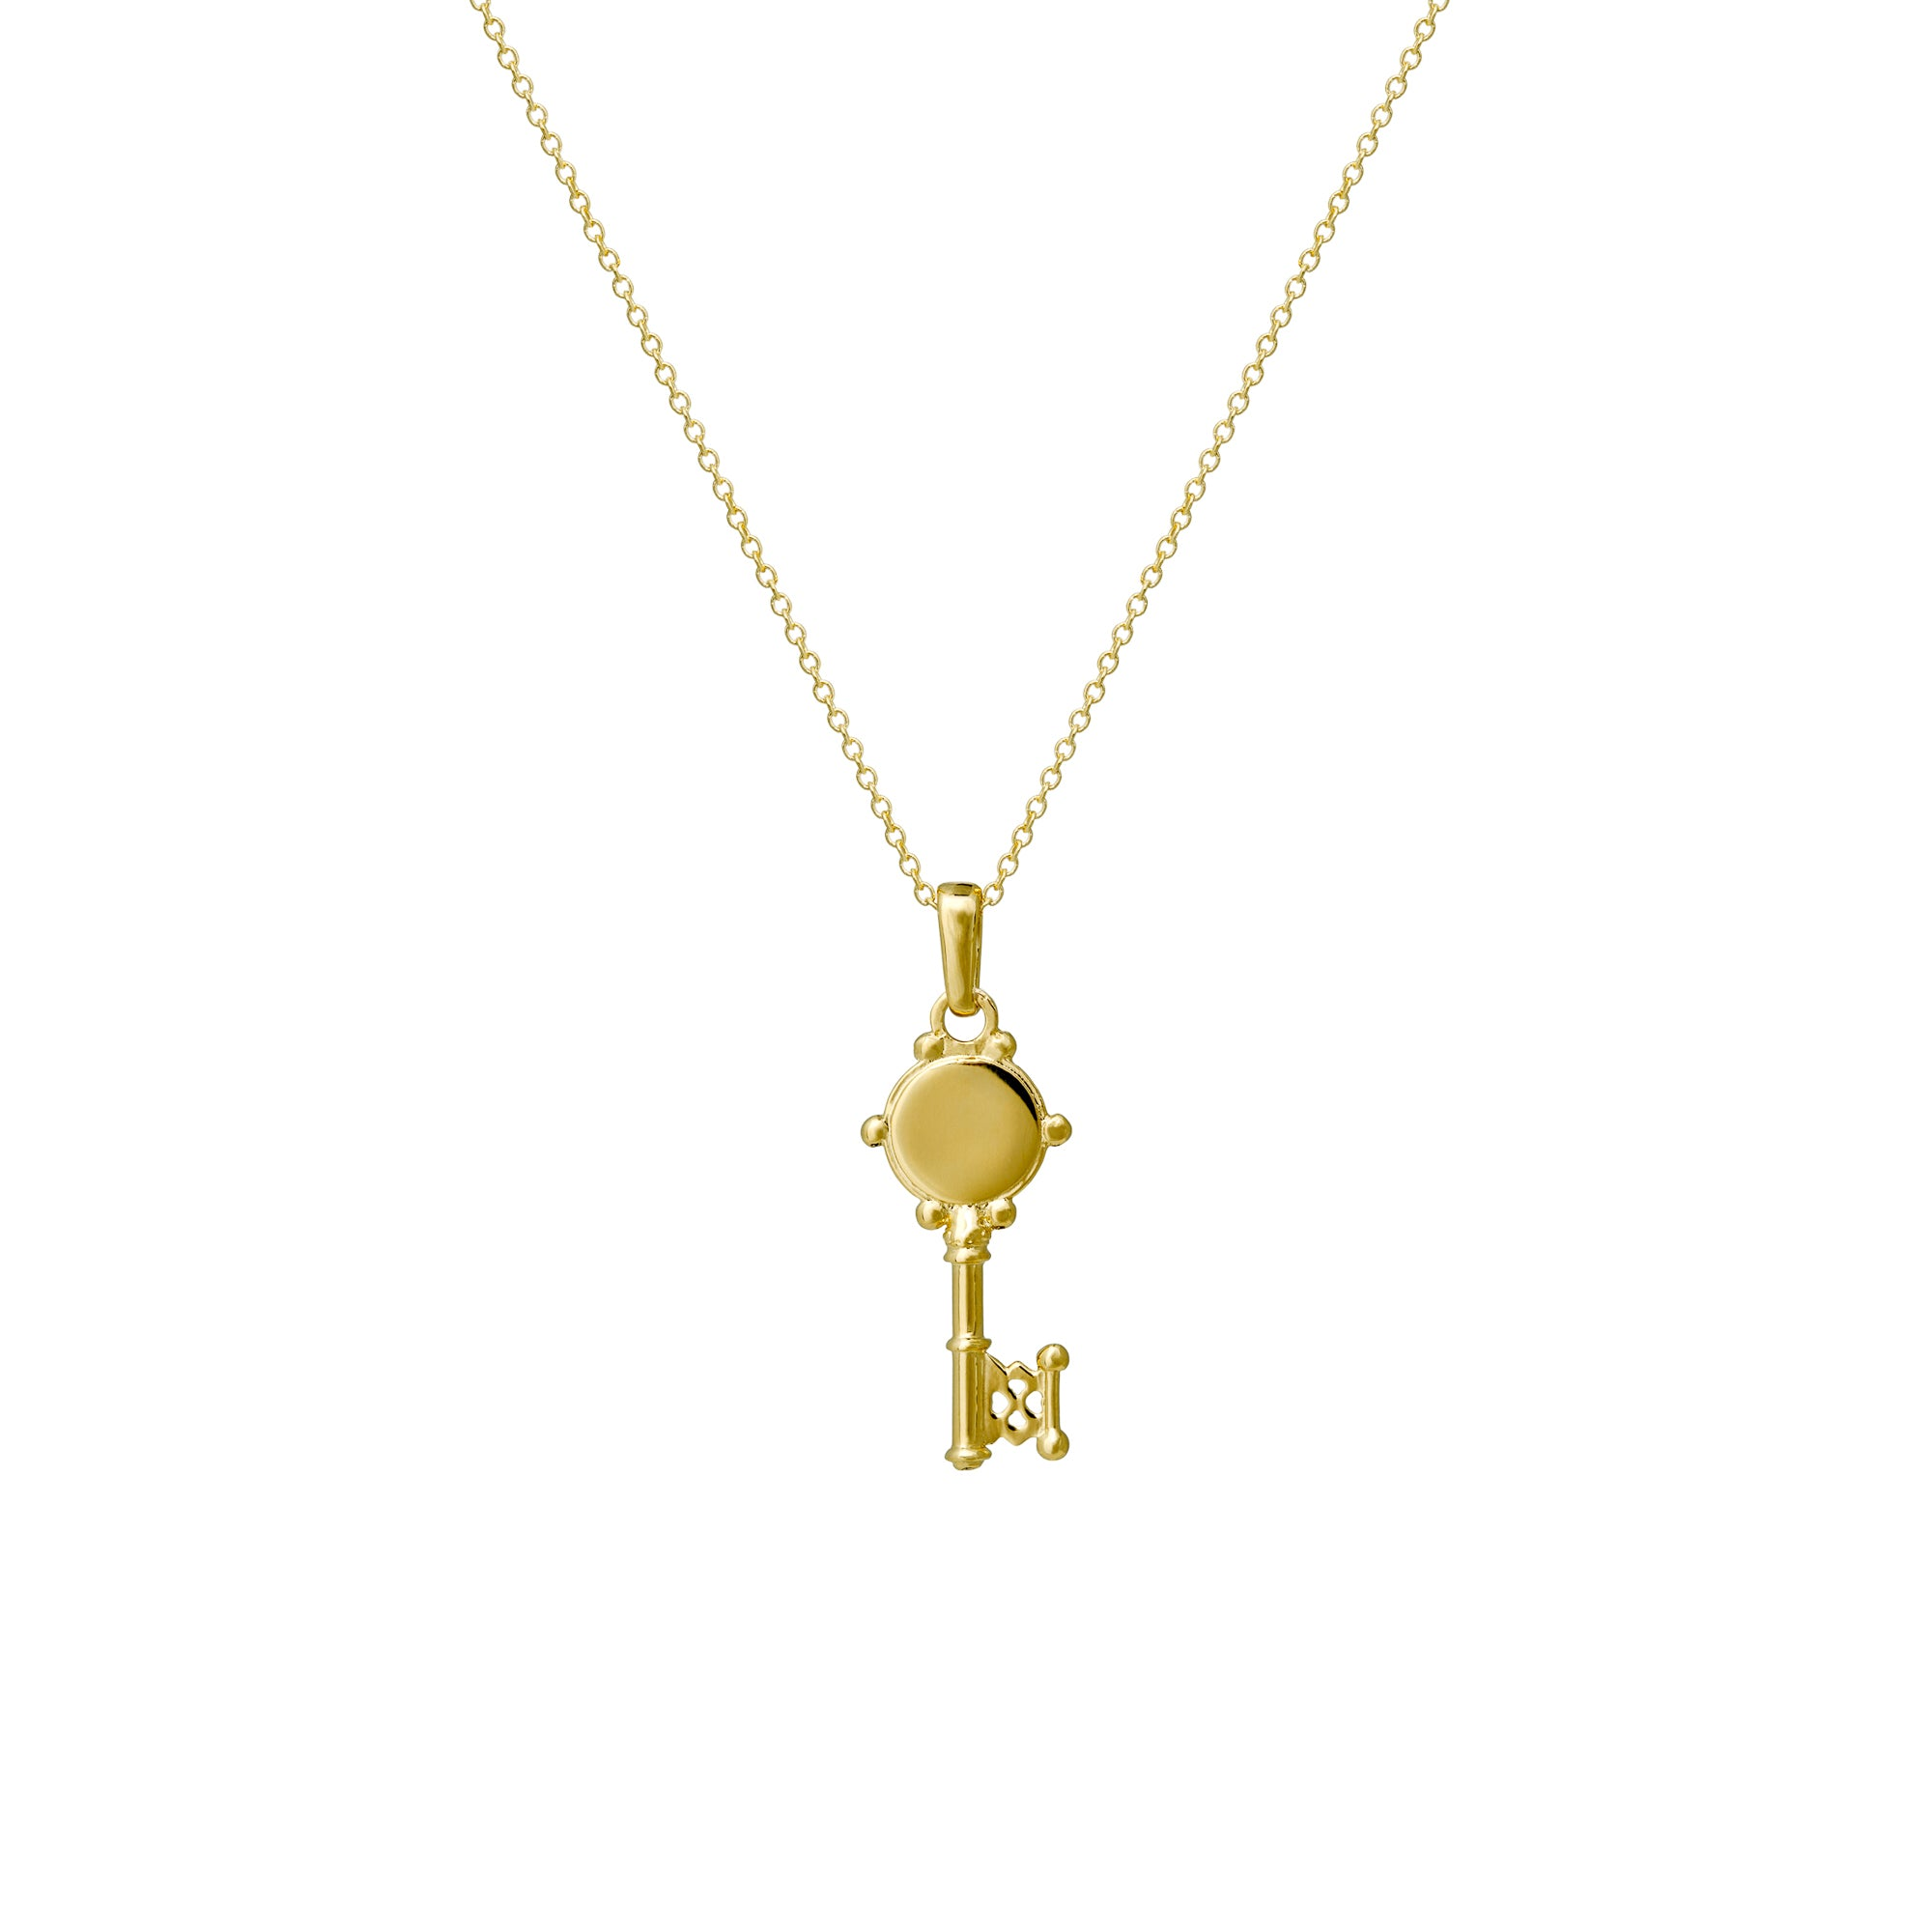 Are You Am I - Nyck Key Necklace